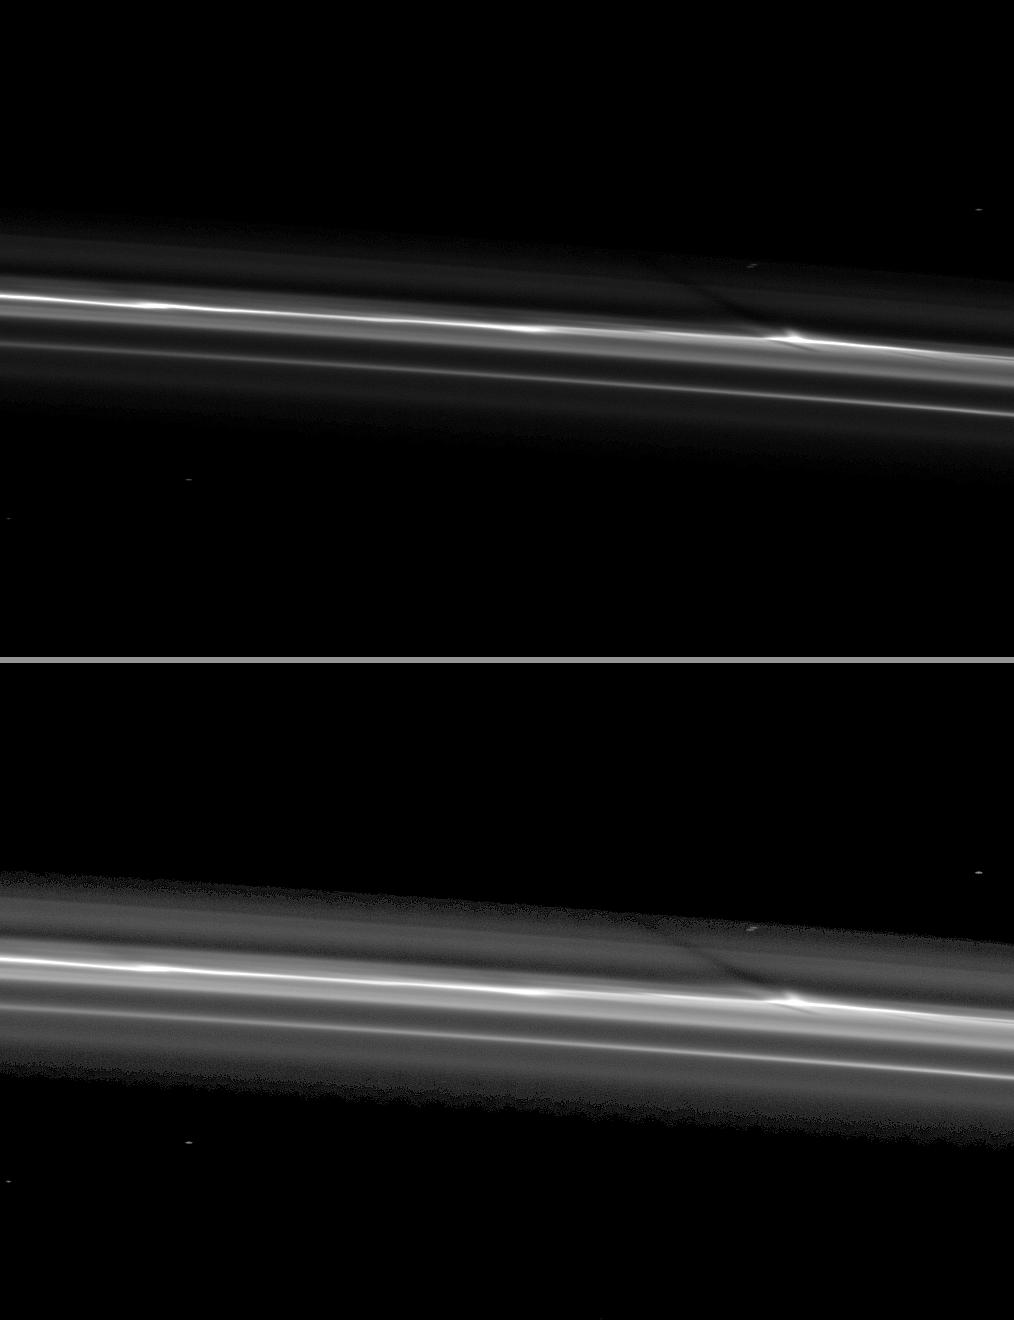 Cassini spies a shadow cast by a vertically extended structure or object in the F ring in this image taken as Saturn approaches its August 2009 equinox.